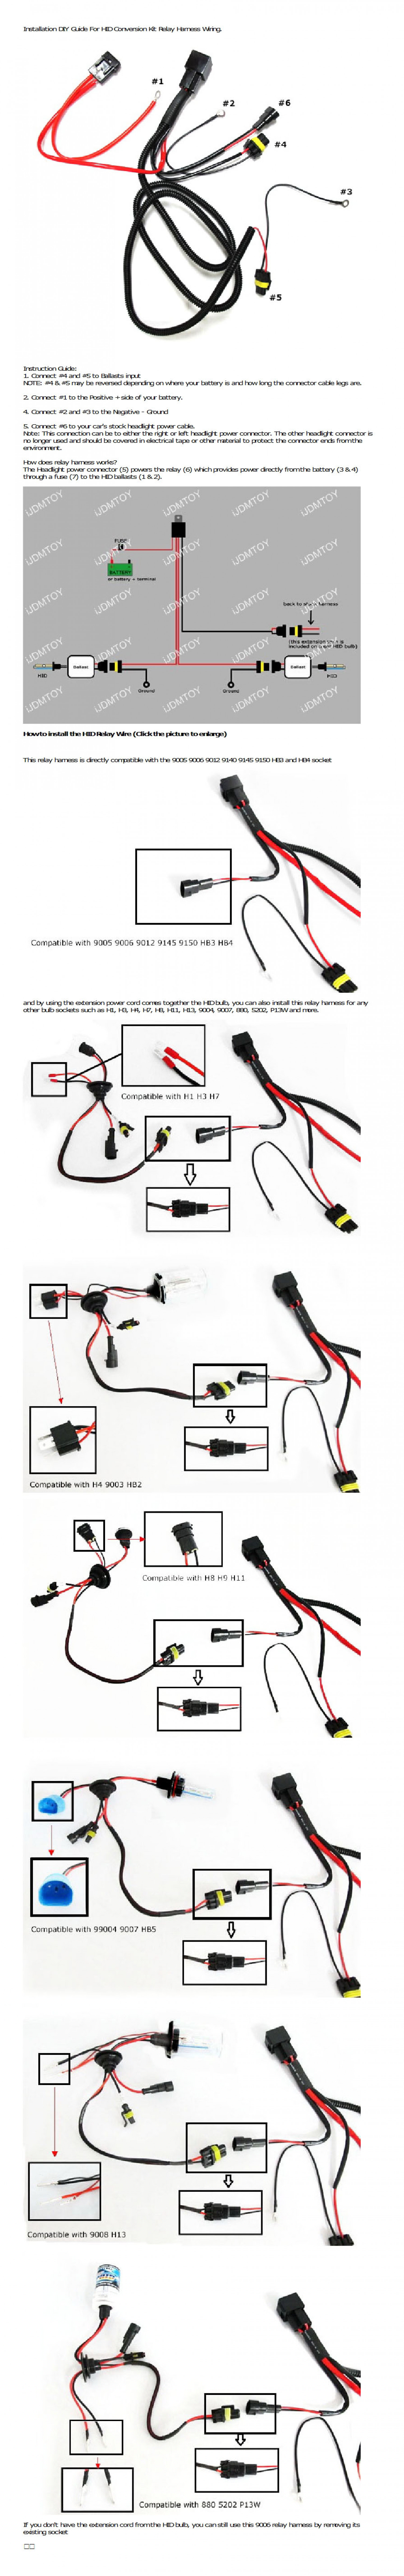 How To Install Relay Harness For HID Conversion Kit Infographic